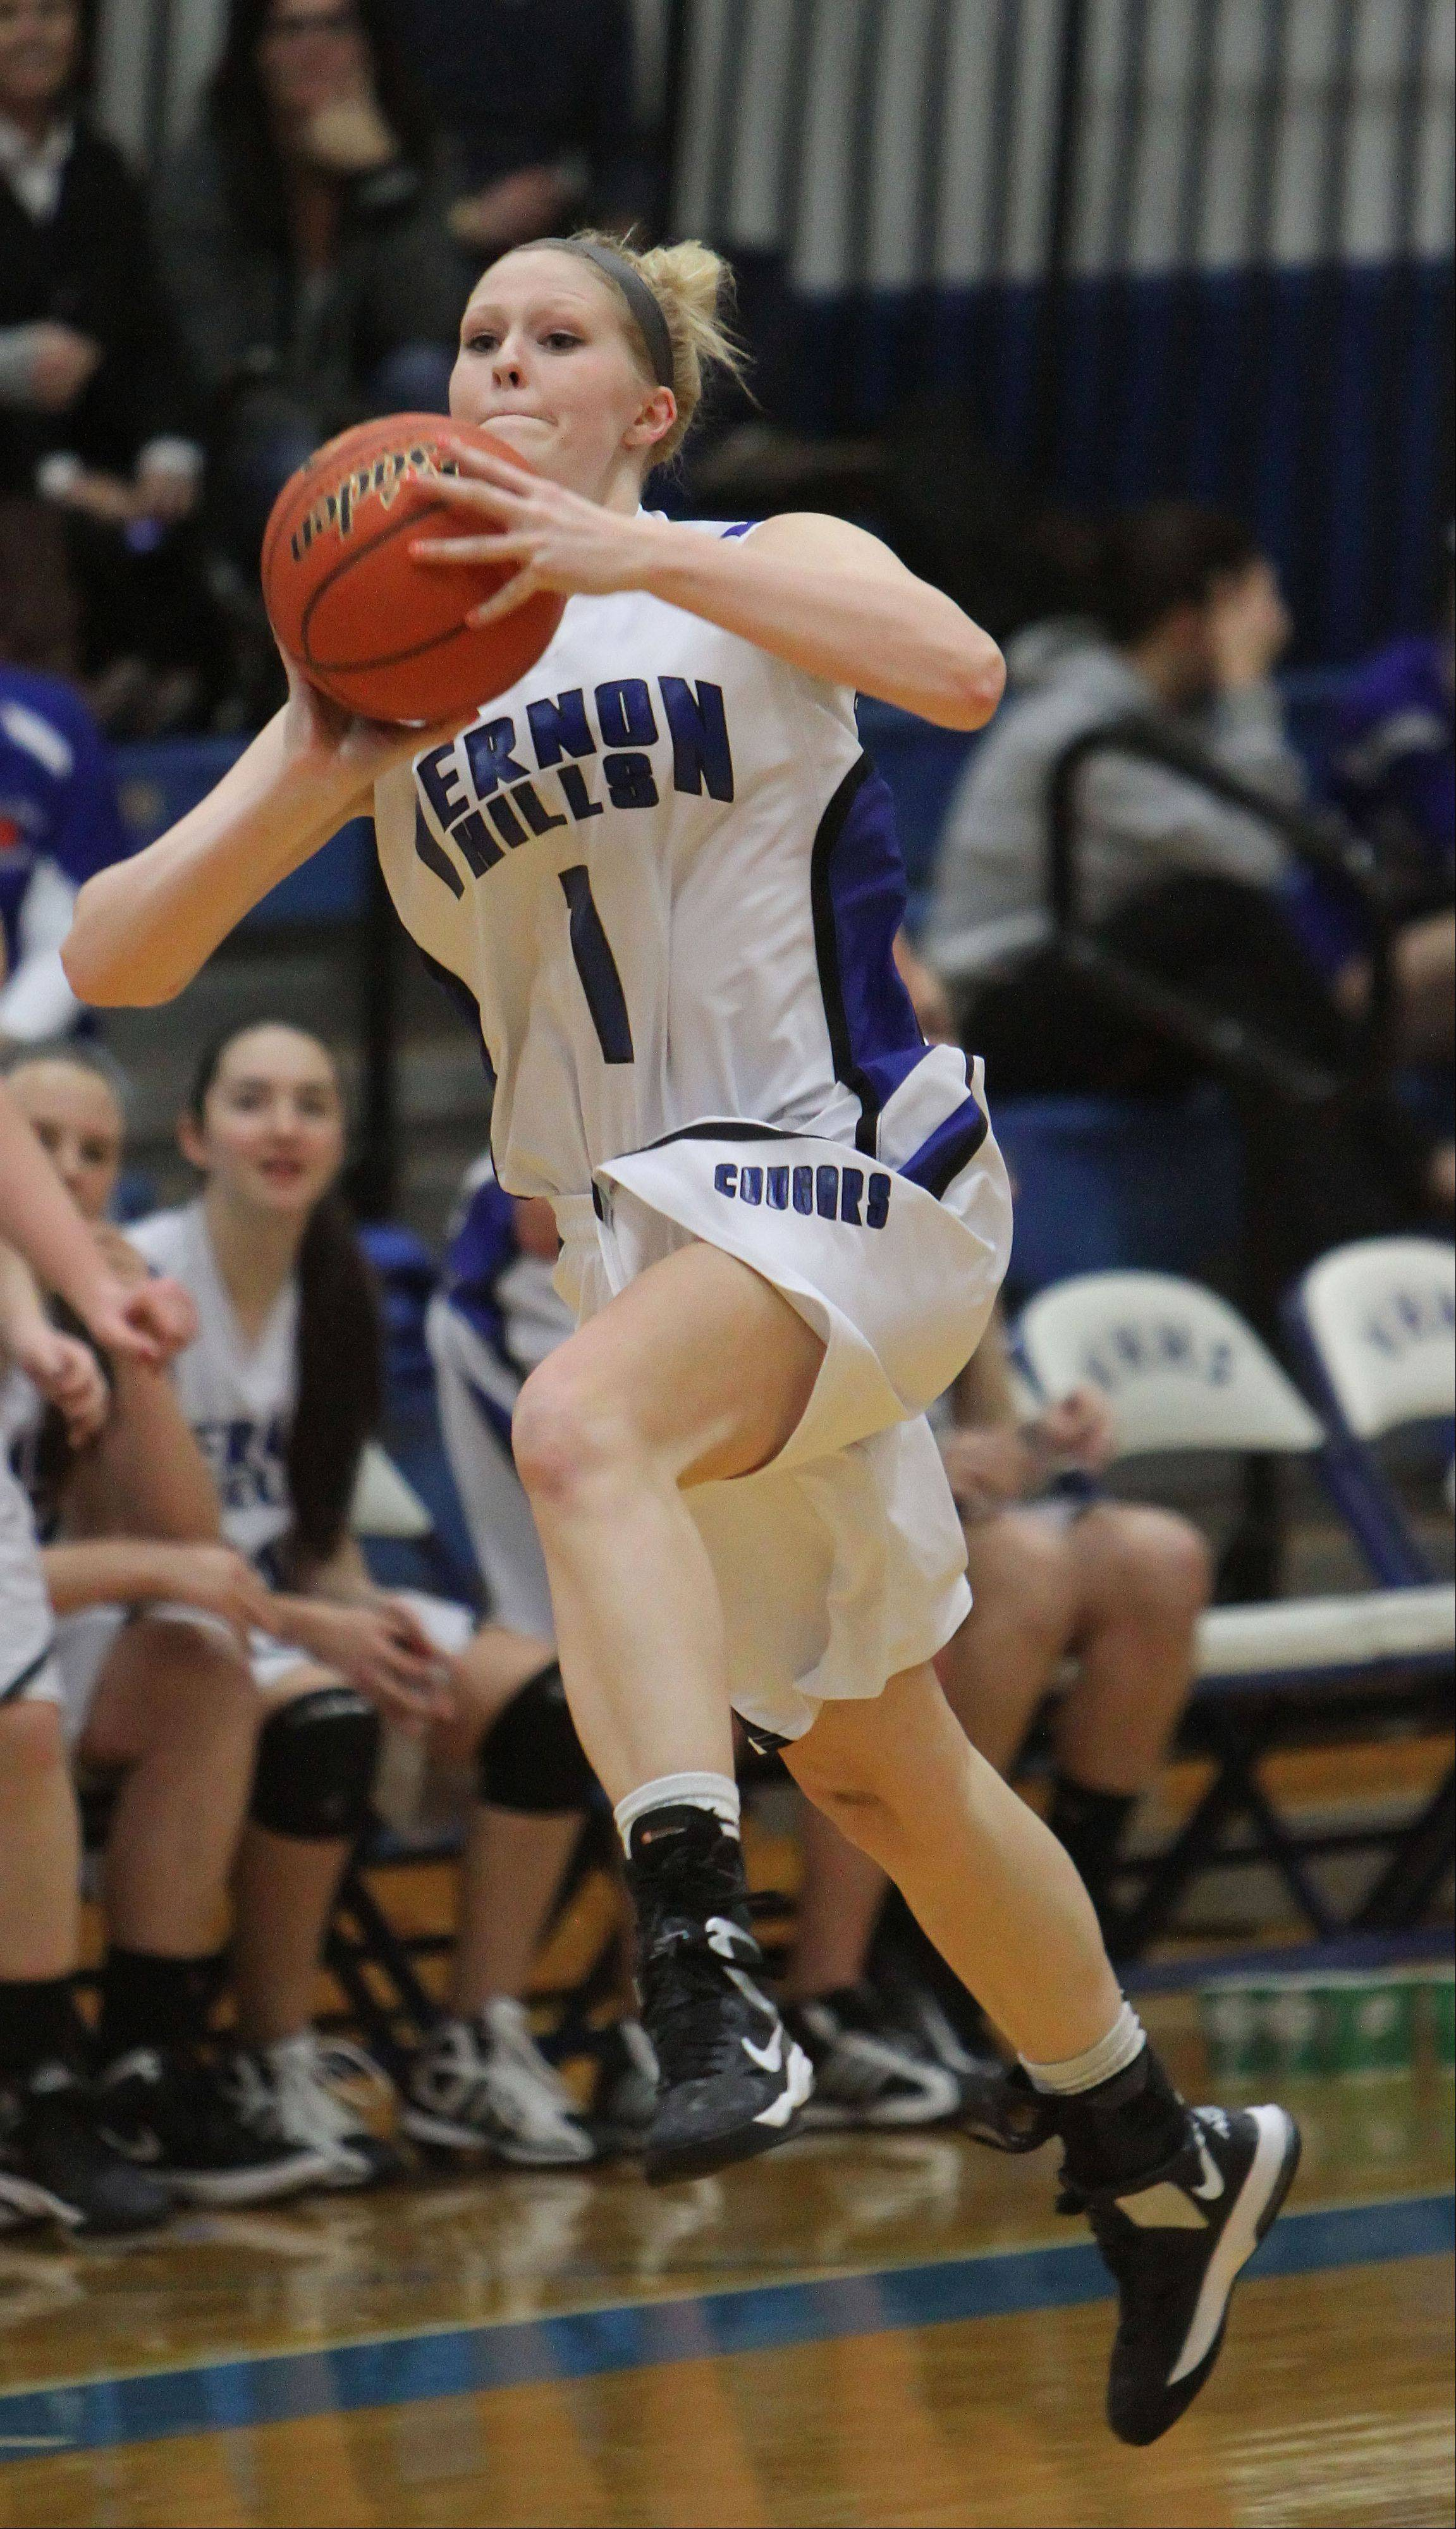 Vernon Hills' Sydney Smith launches a shot from halfcourt at the end of the first quarter against Stevenson on Tuesday.